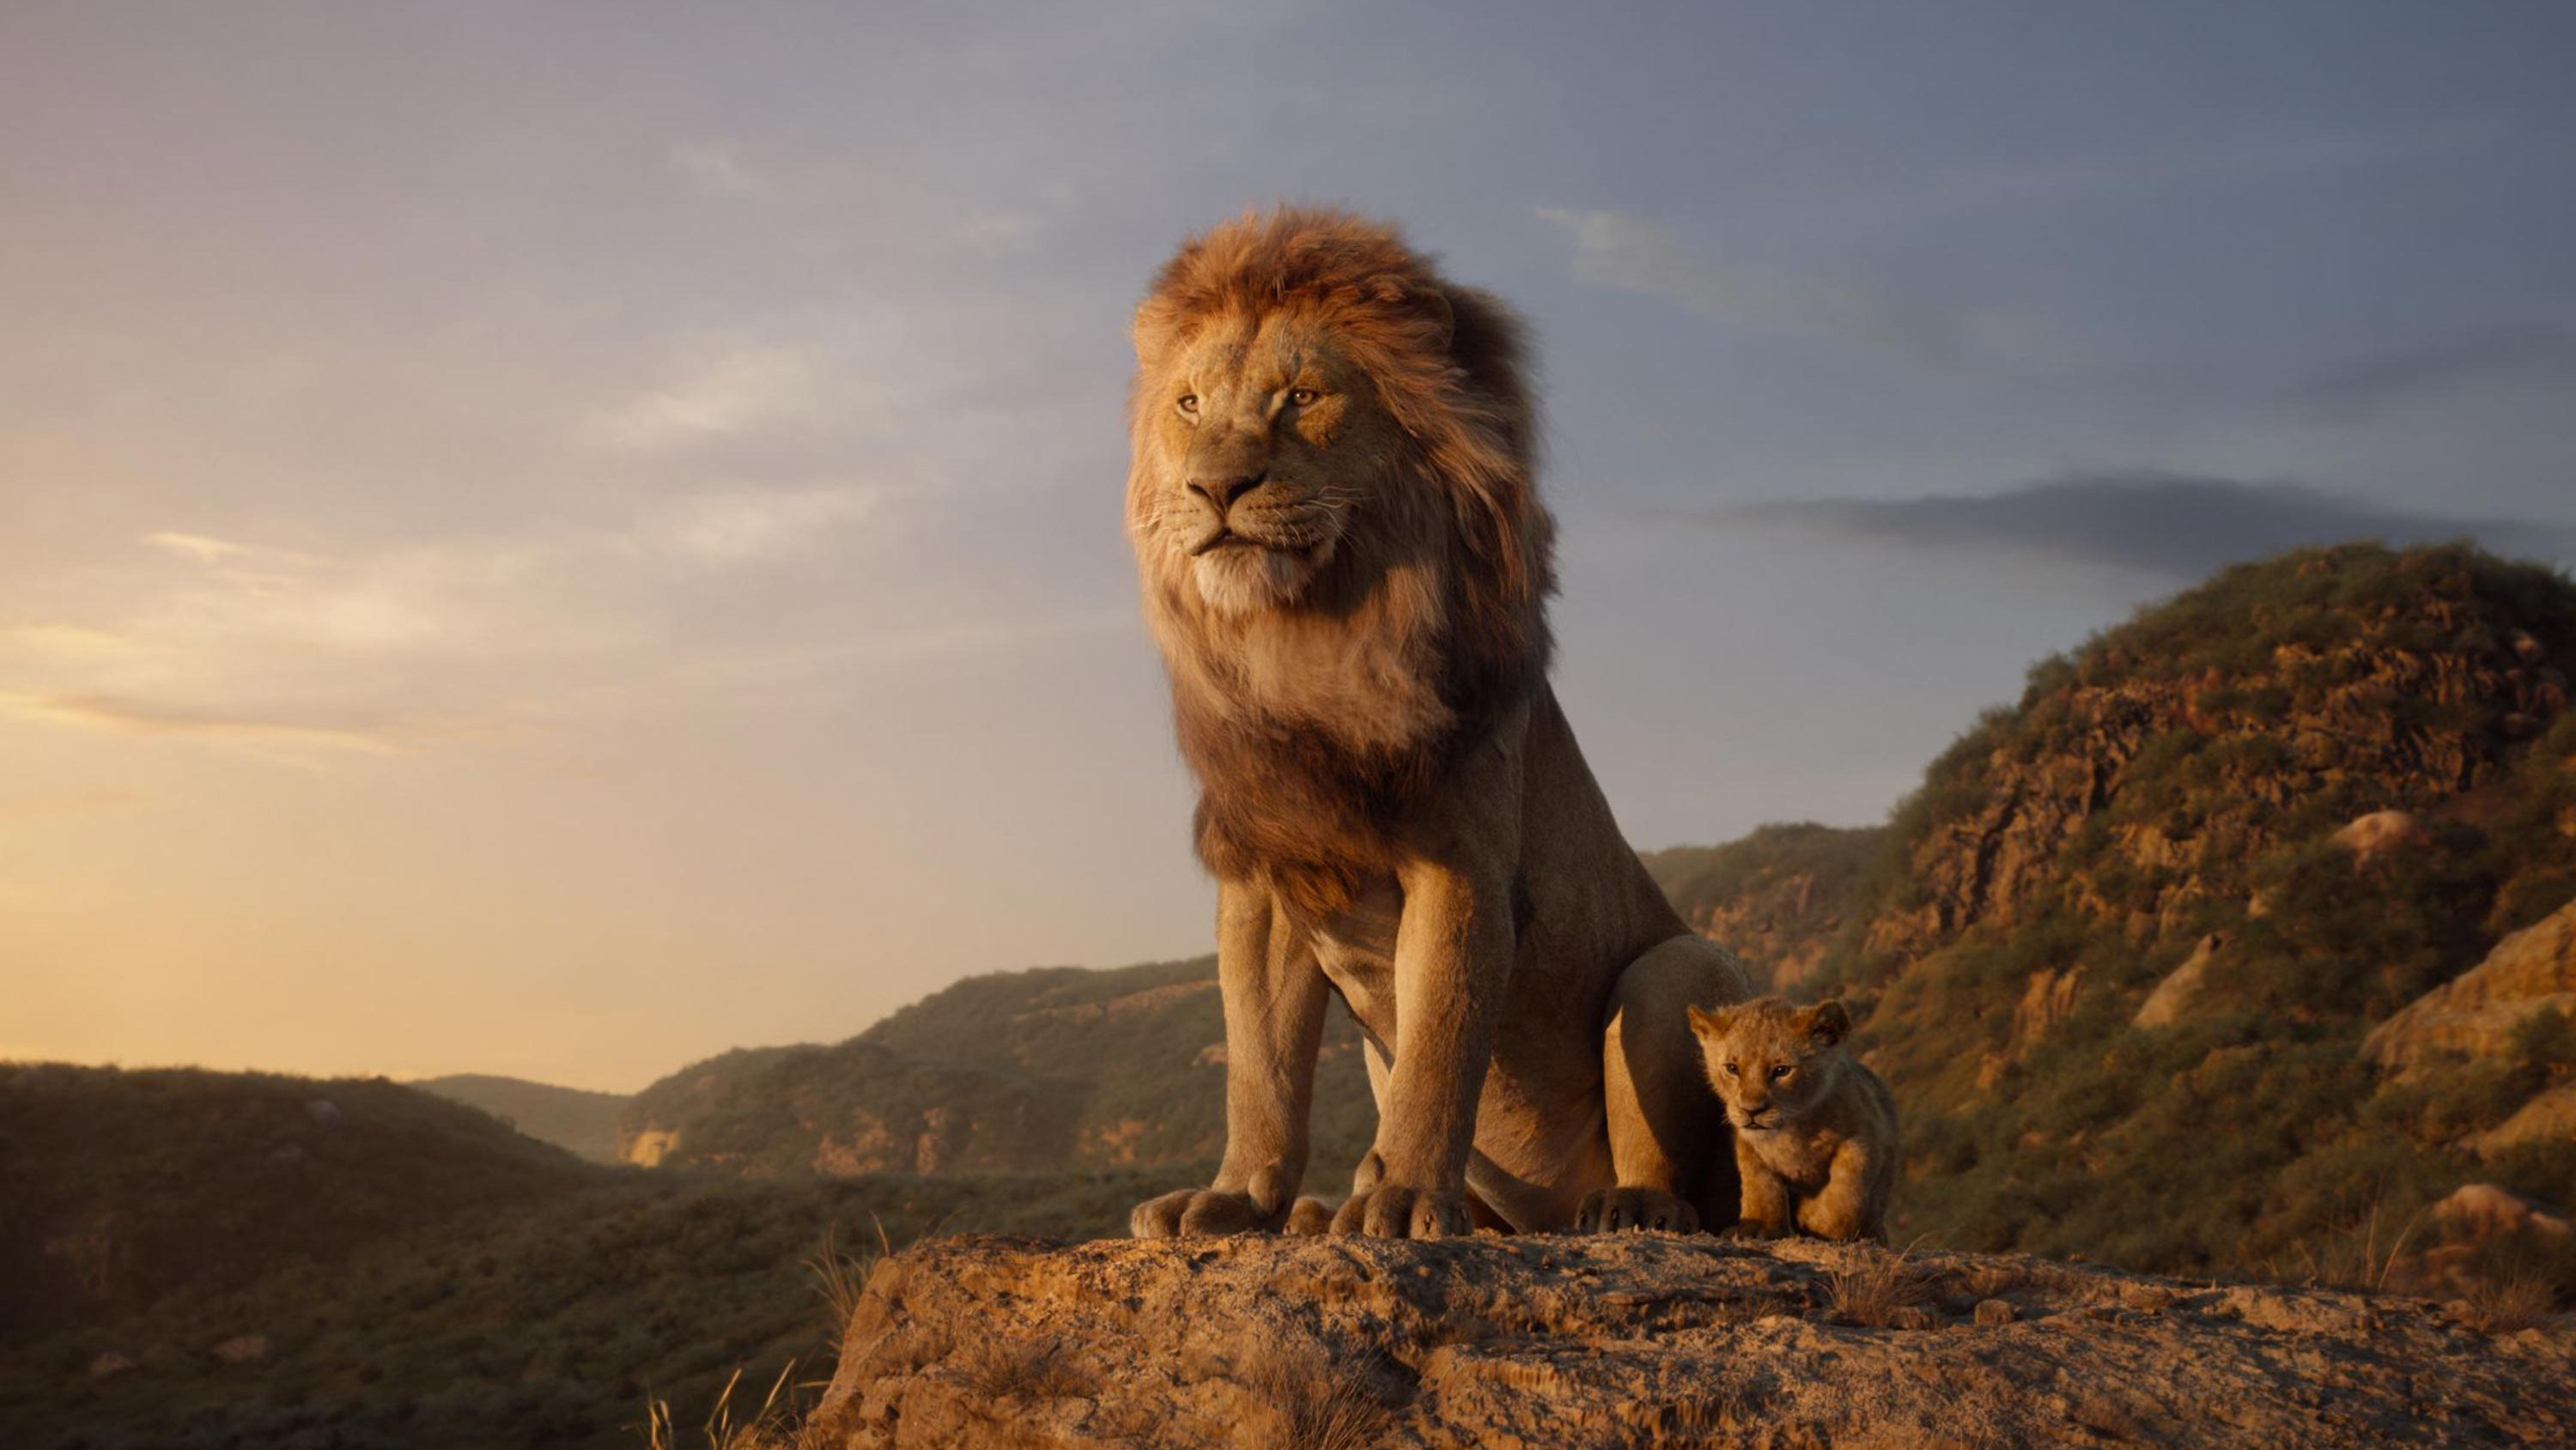 https://cinemaplanet.pt/wp-content/uploads/2019/07/cropped-lion-king-2.jpg